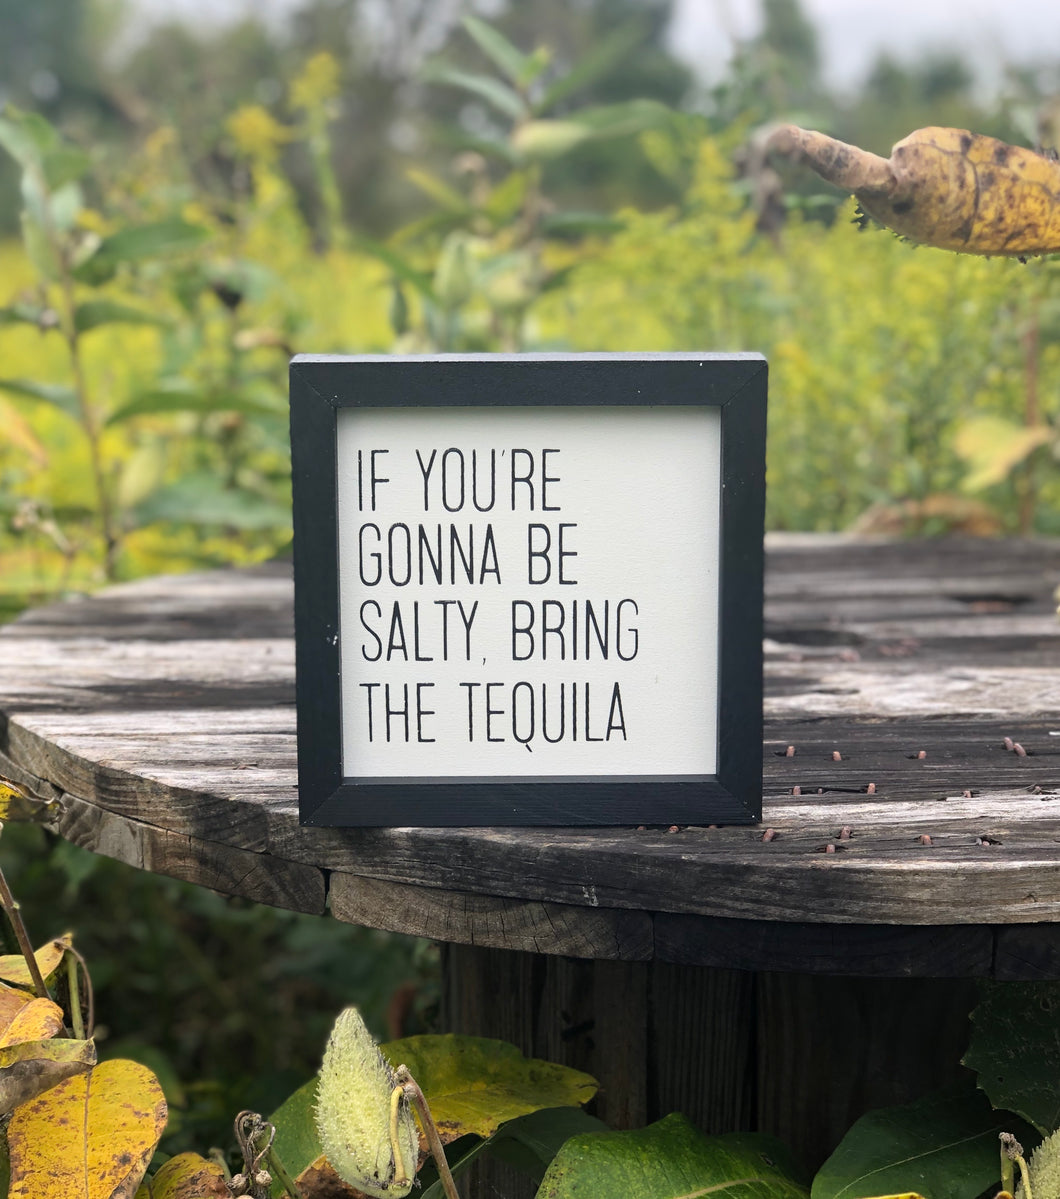 IF YOU'RE GOING TO BE SALTY, BRING TEQUILA